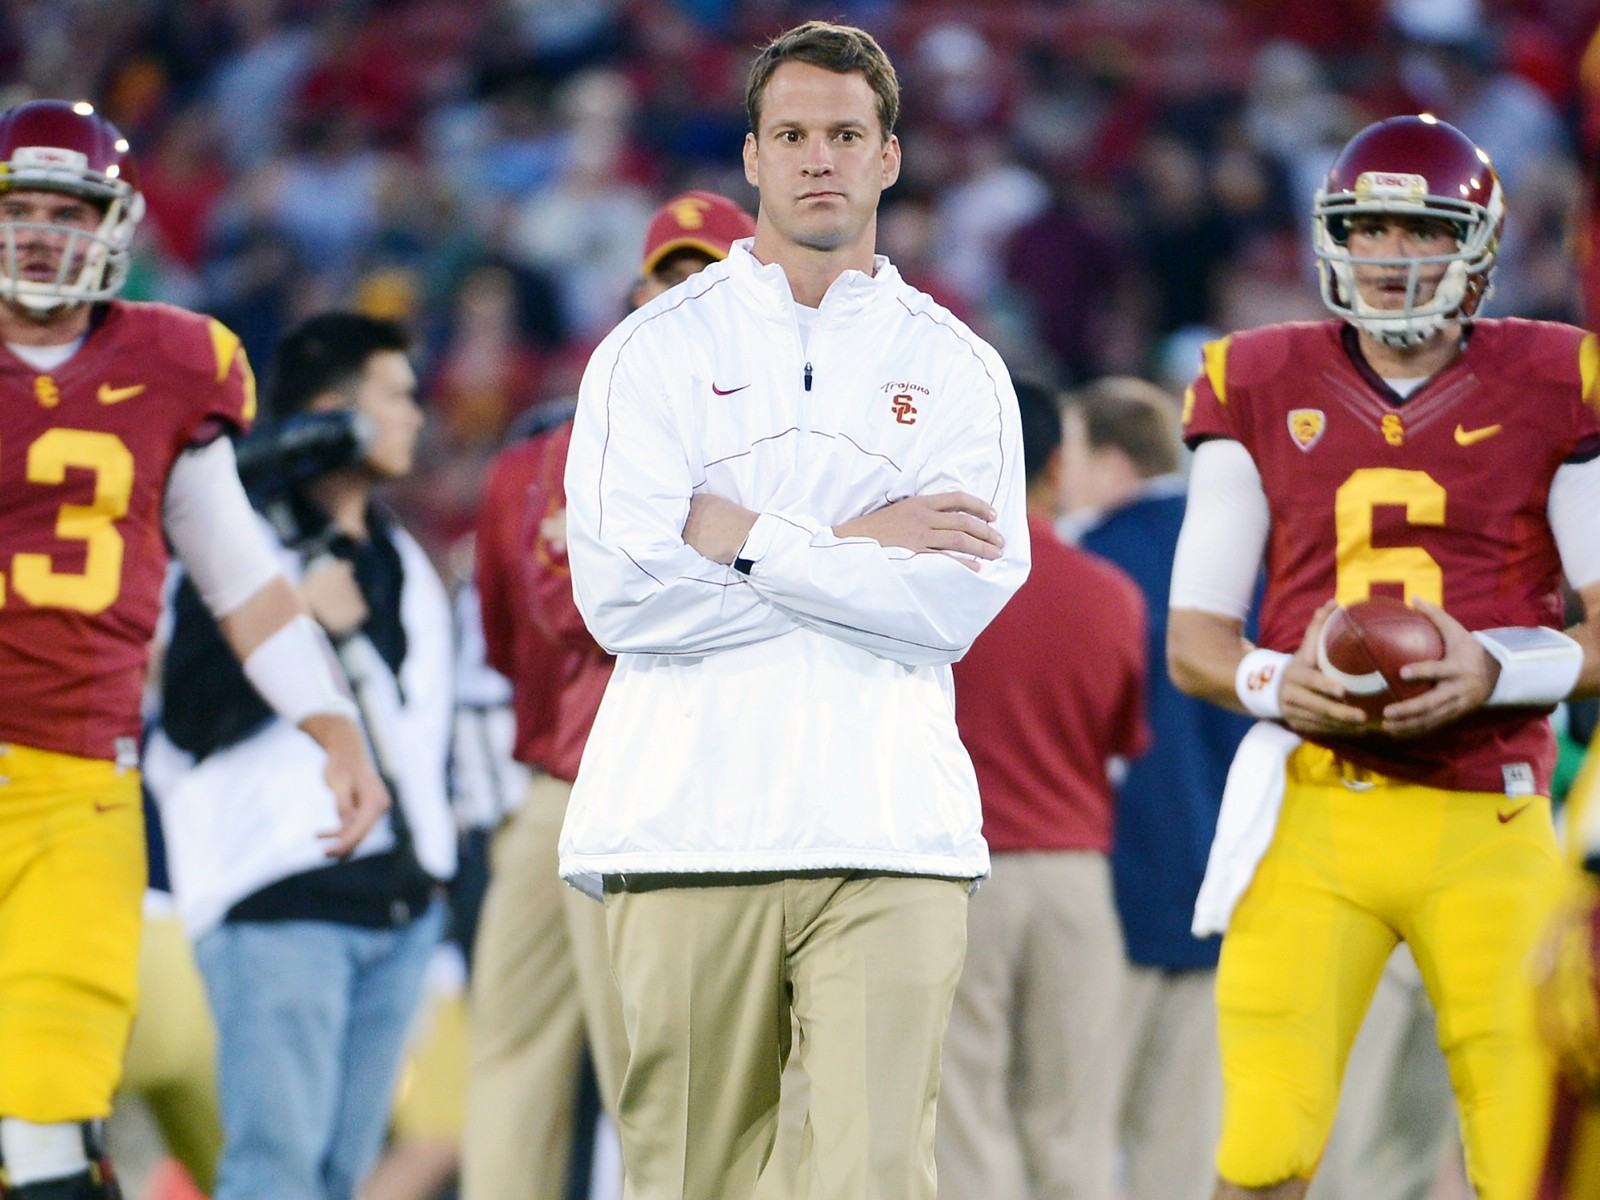 lane kiffin the football genius and overrated head coach